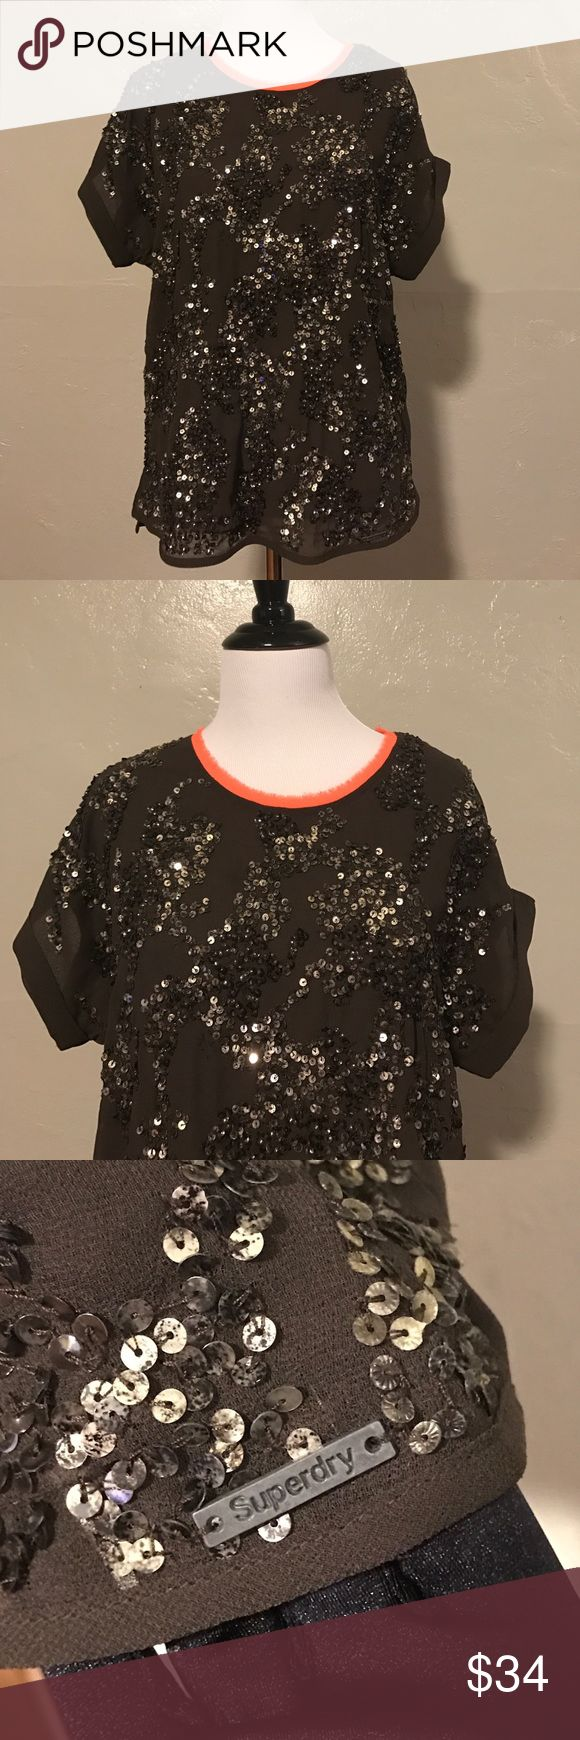 Super Dry Brown/Orange Sequins Top Good condition. It's see through. There are some sequins missing but not noticeable. 100% authentic. Offer no trade. Superdry Tops Tees - Short Sleeve